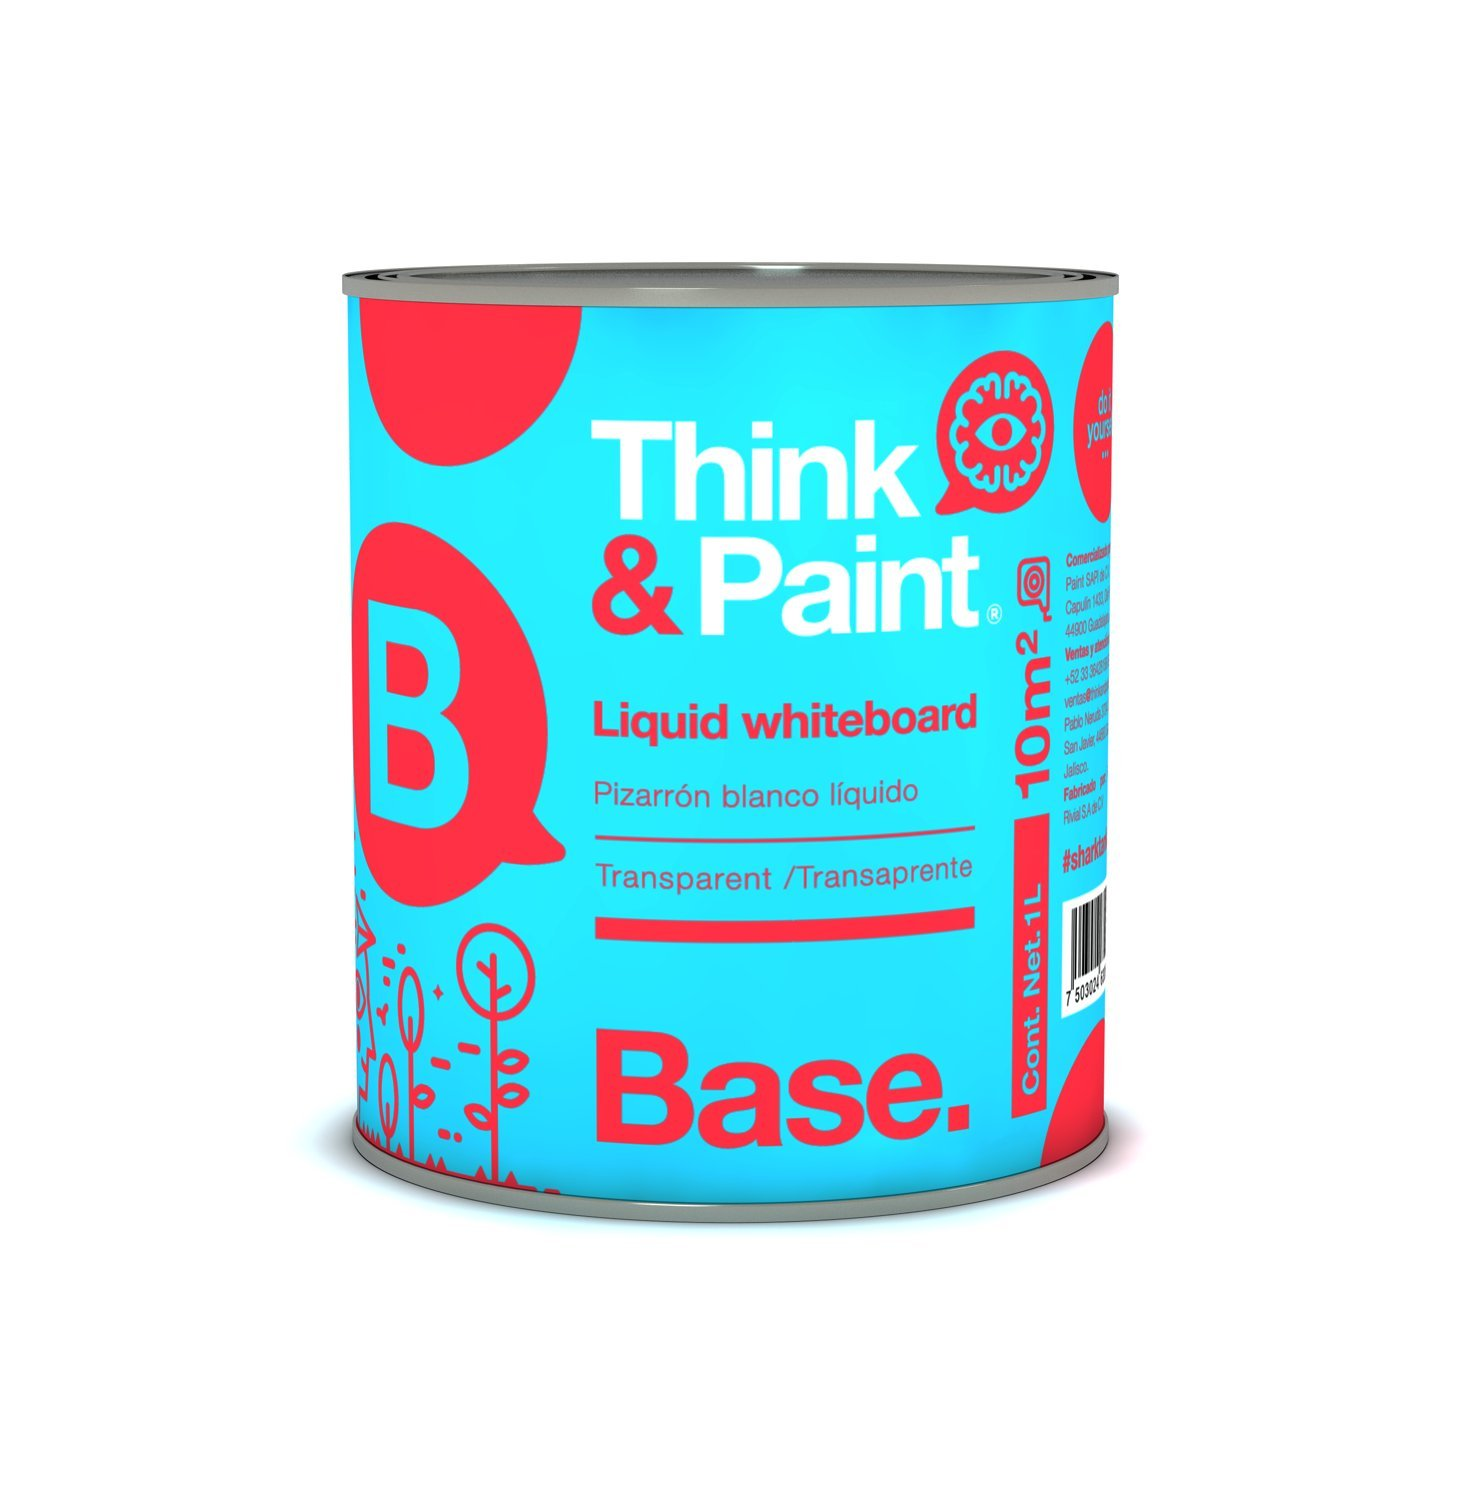 Think & Paint White board paint for 100 sq ft